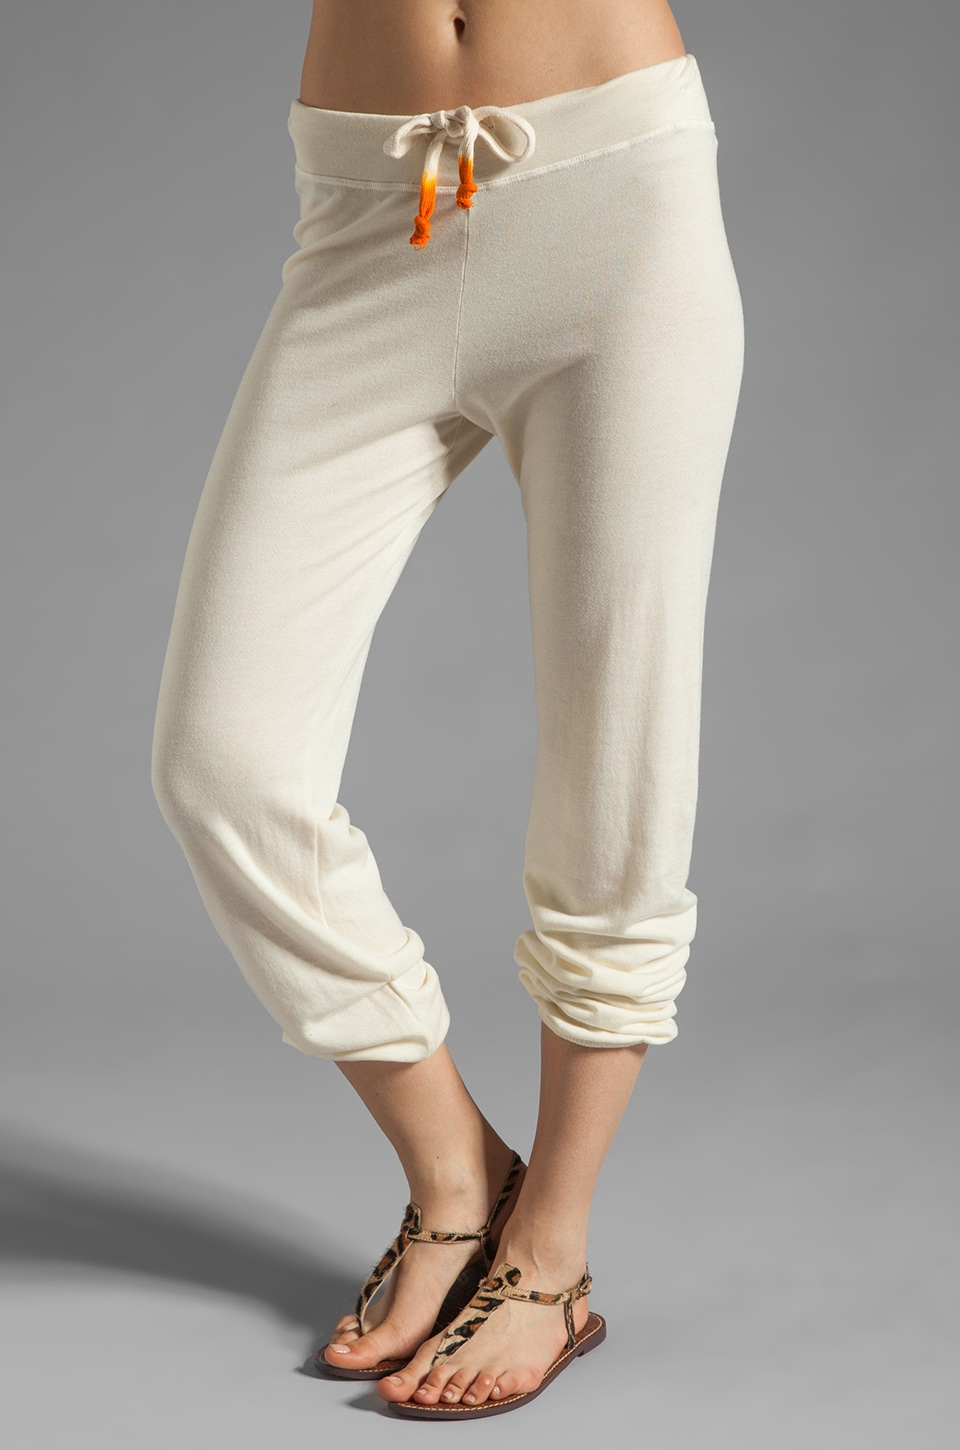 SUNDRY Light Terry Classic Sweatpant in Sea Shell